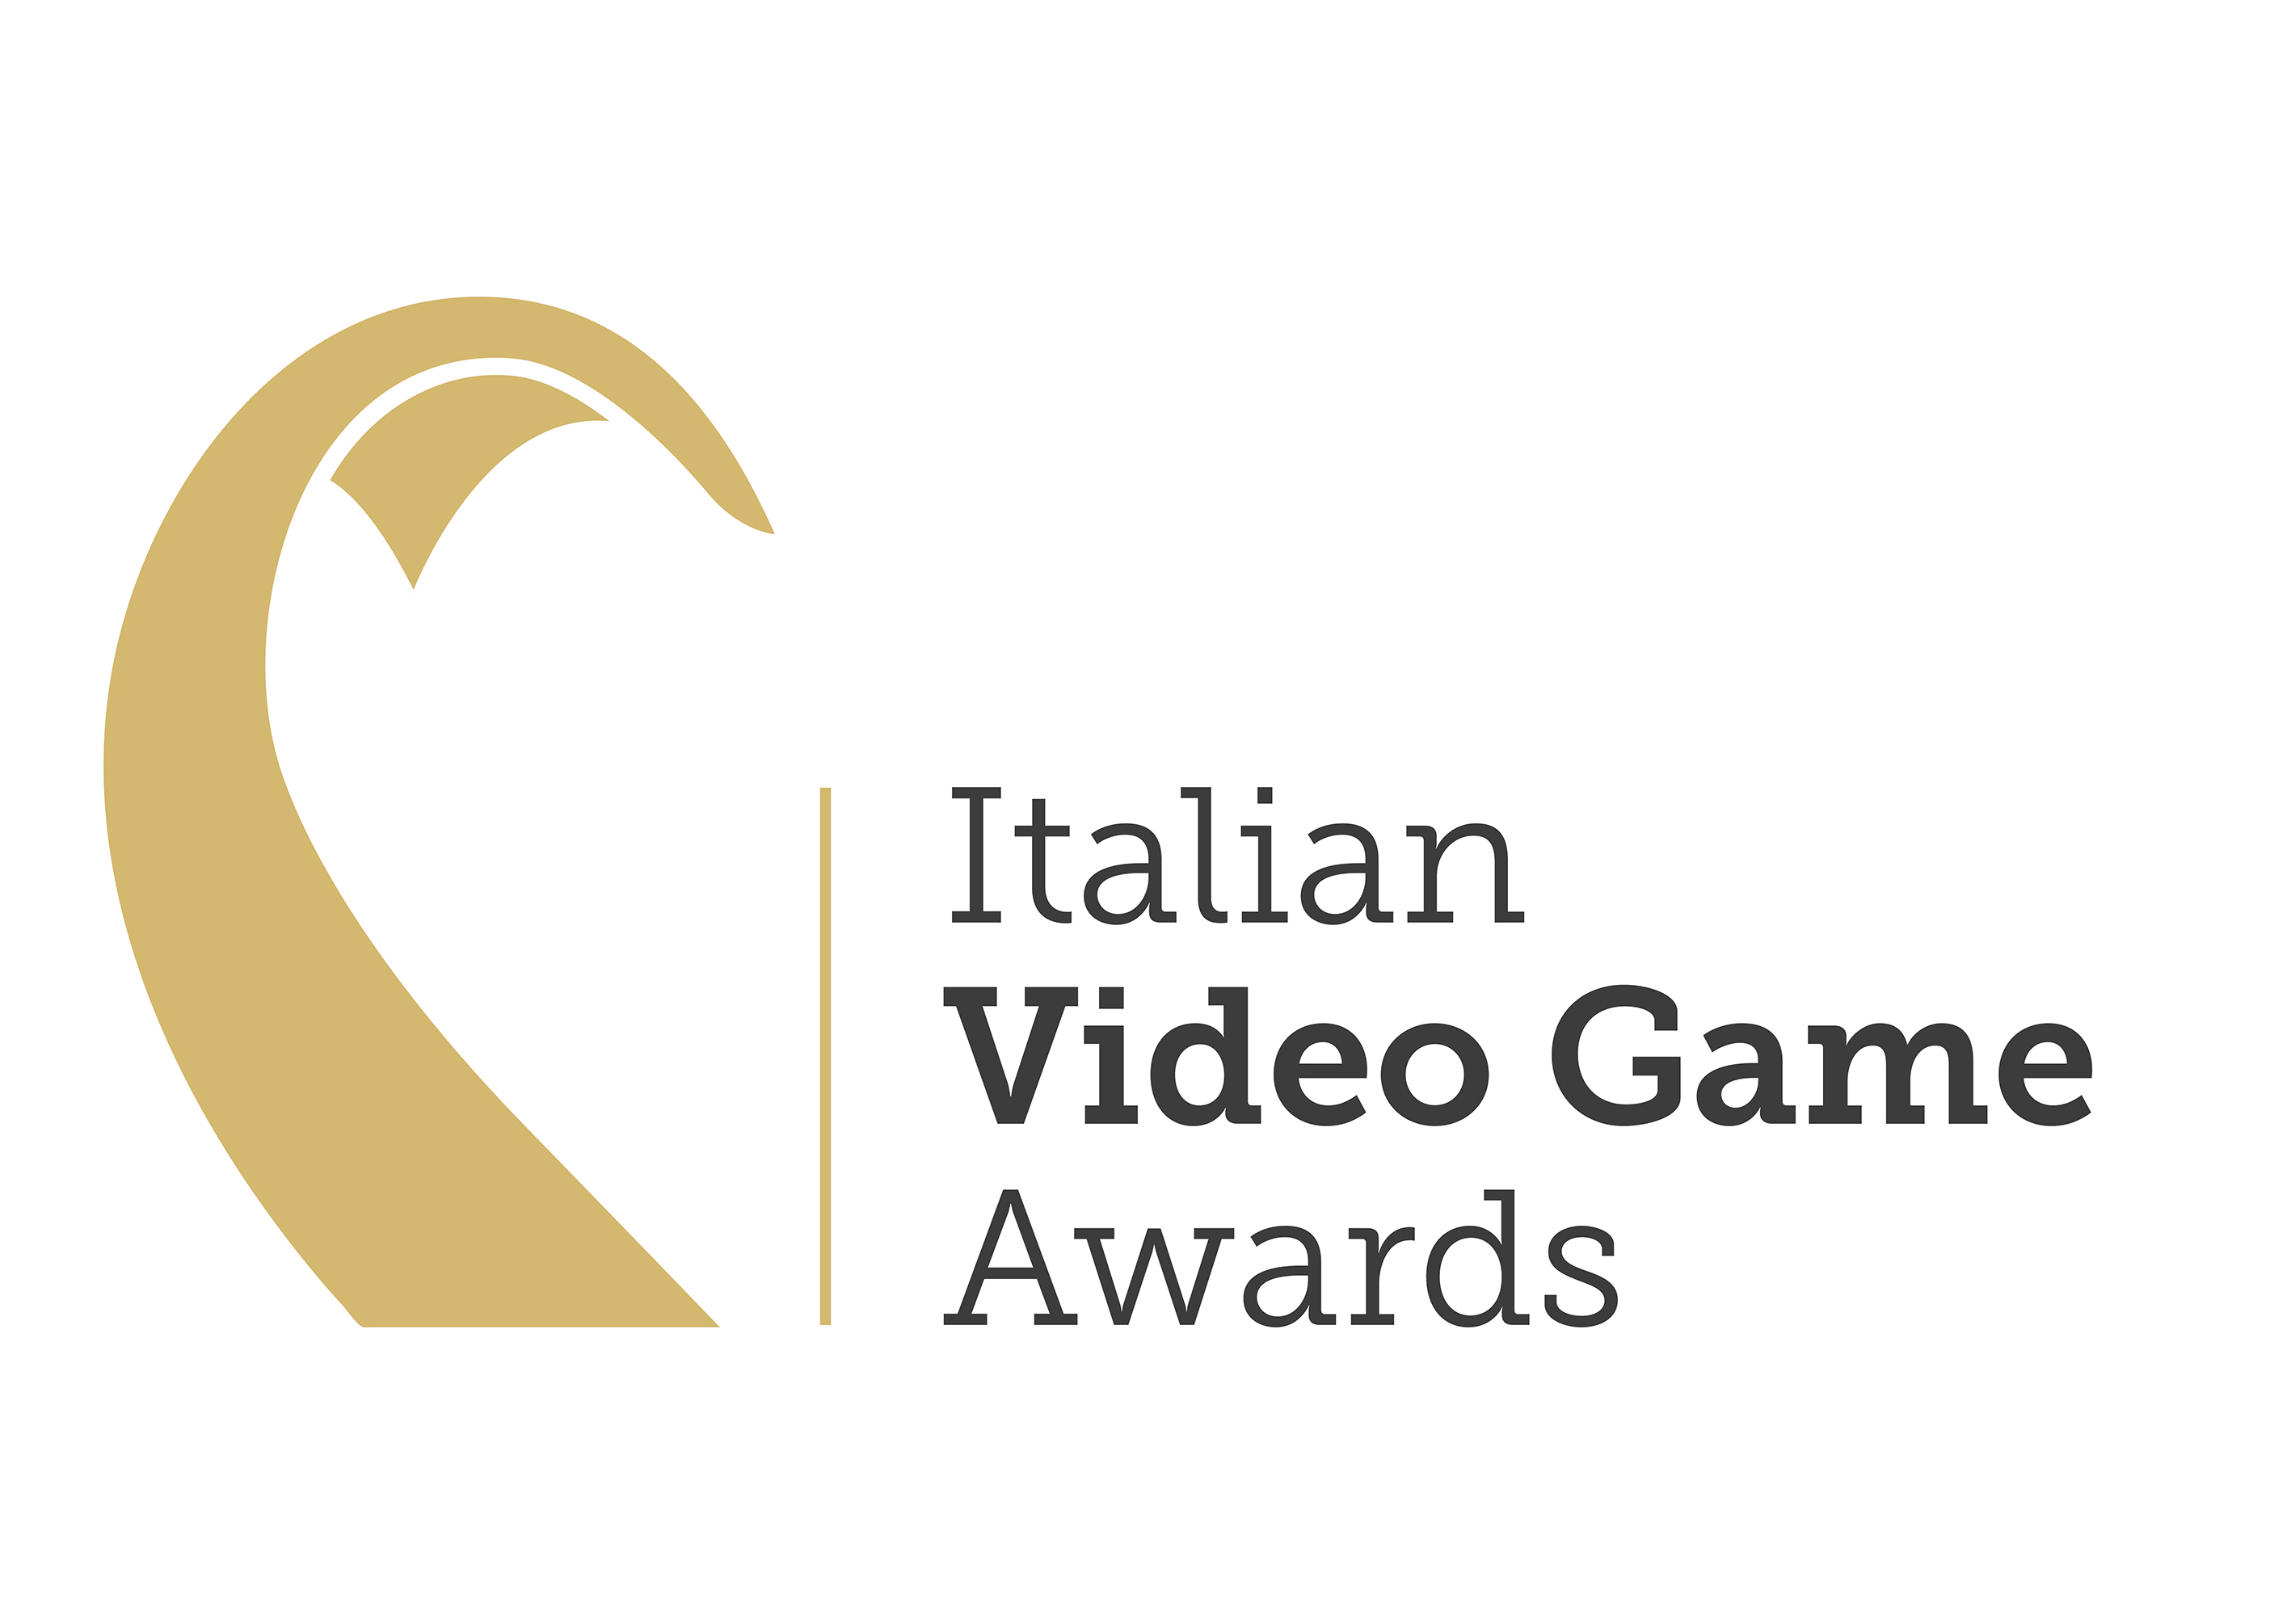 Italian Video Game Awards